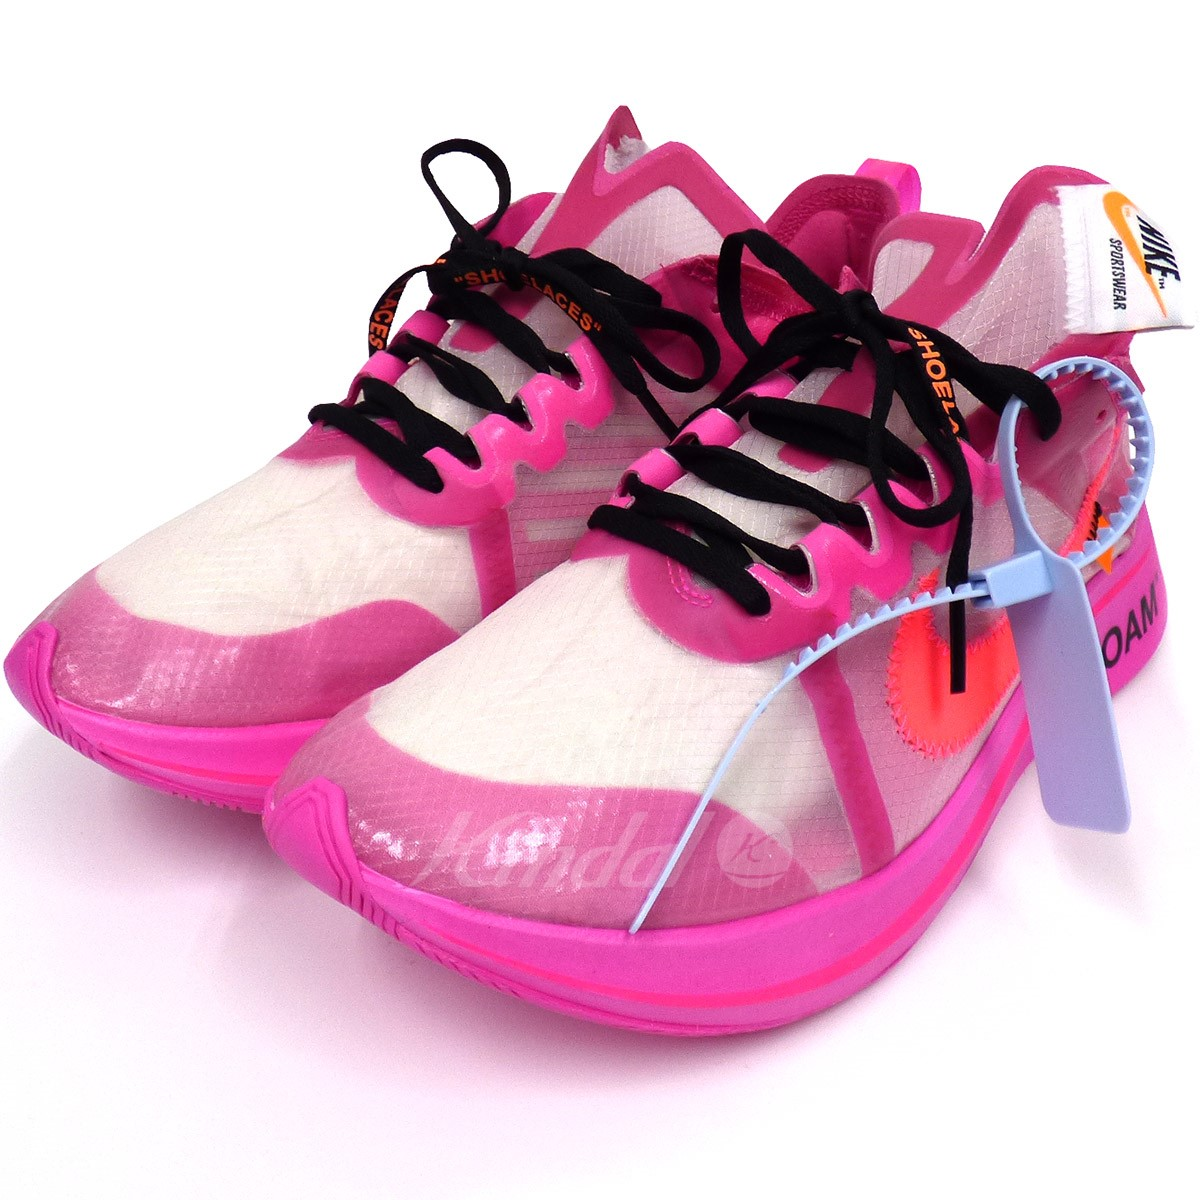 Kindal Off White X Nike Zoom Fly Zoom Fly Sneakers Pink Size Us10